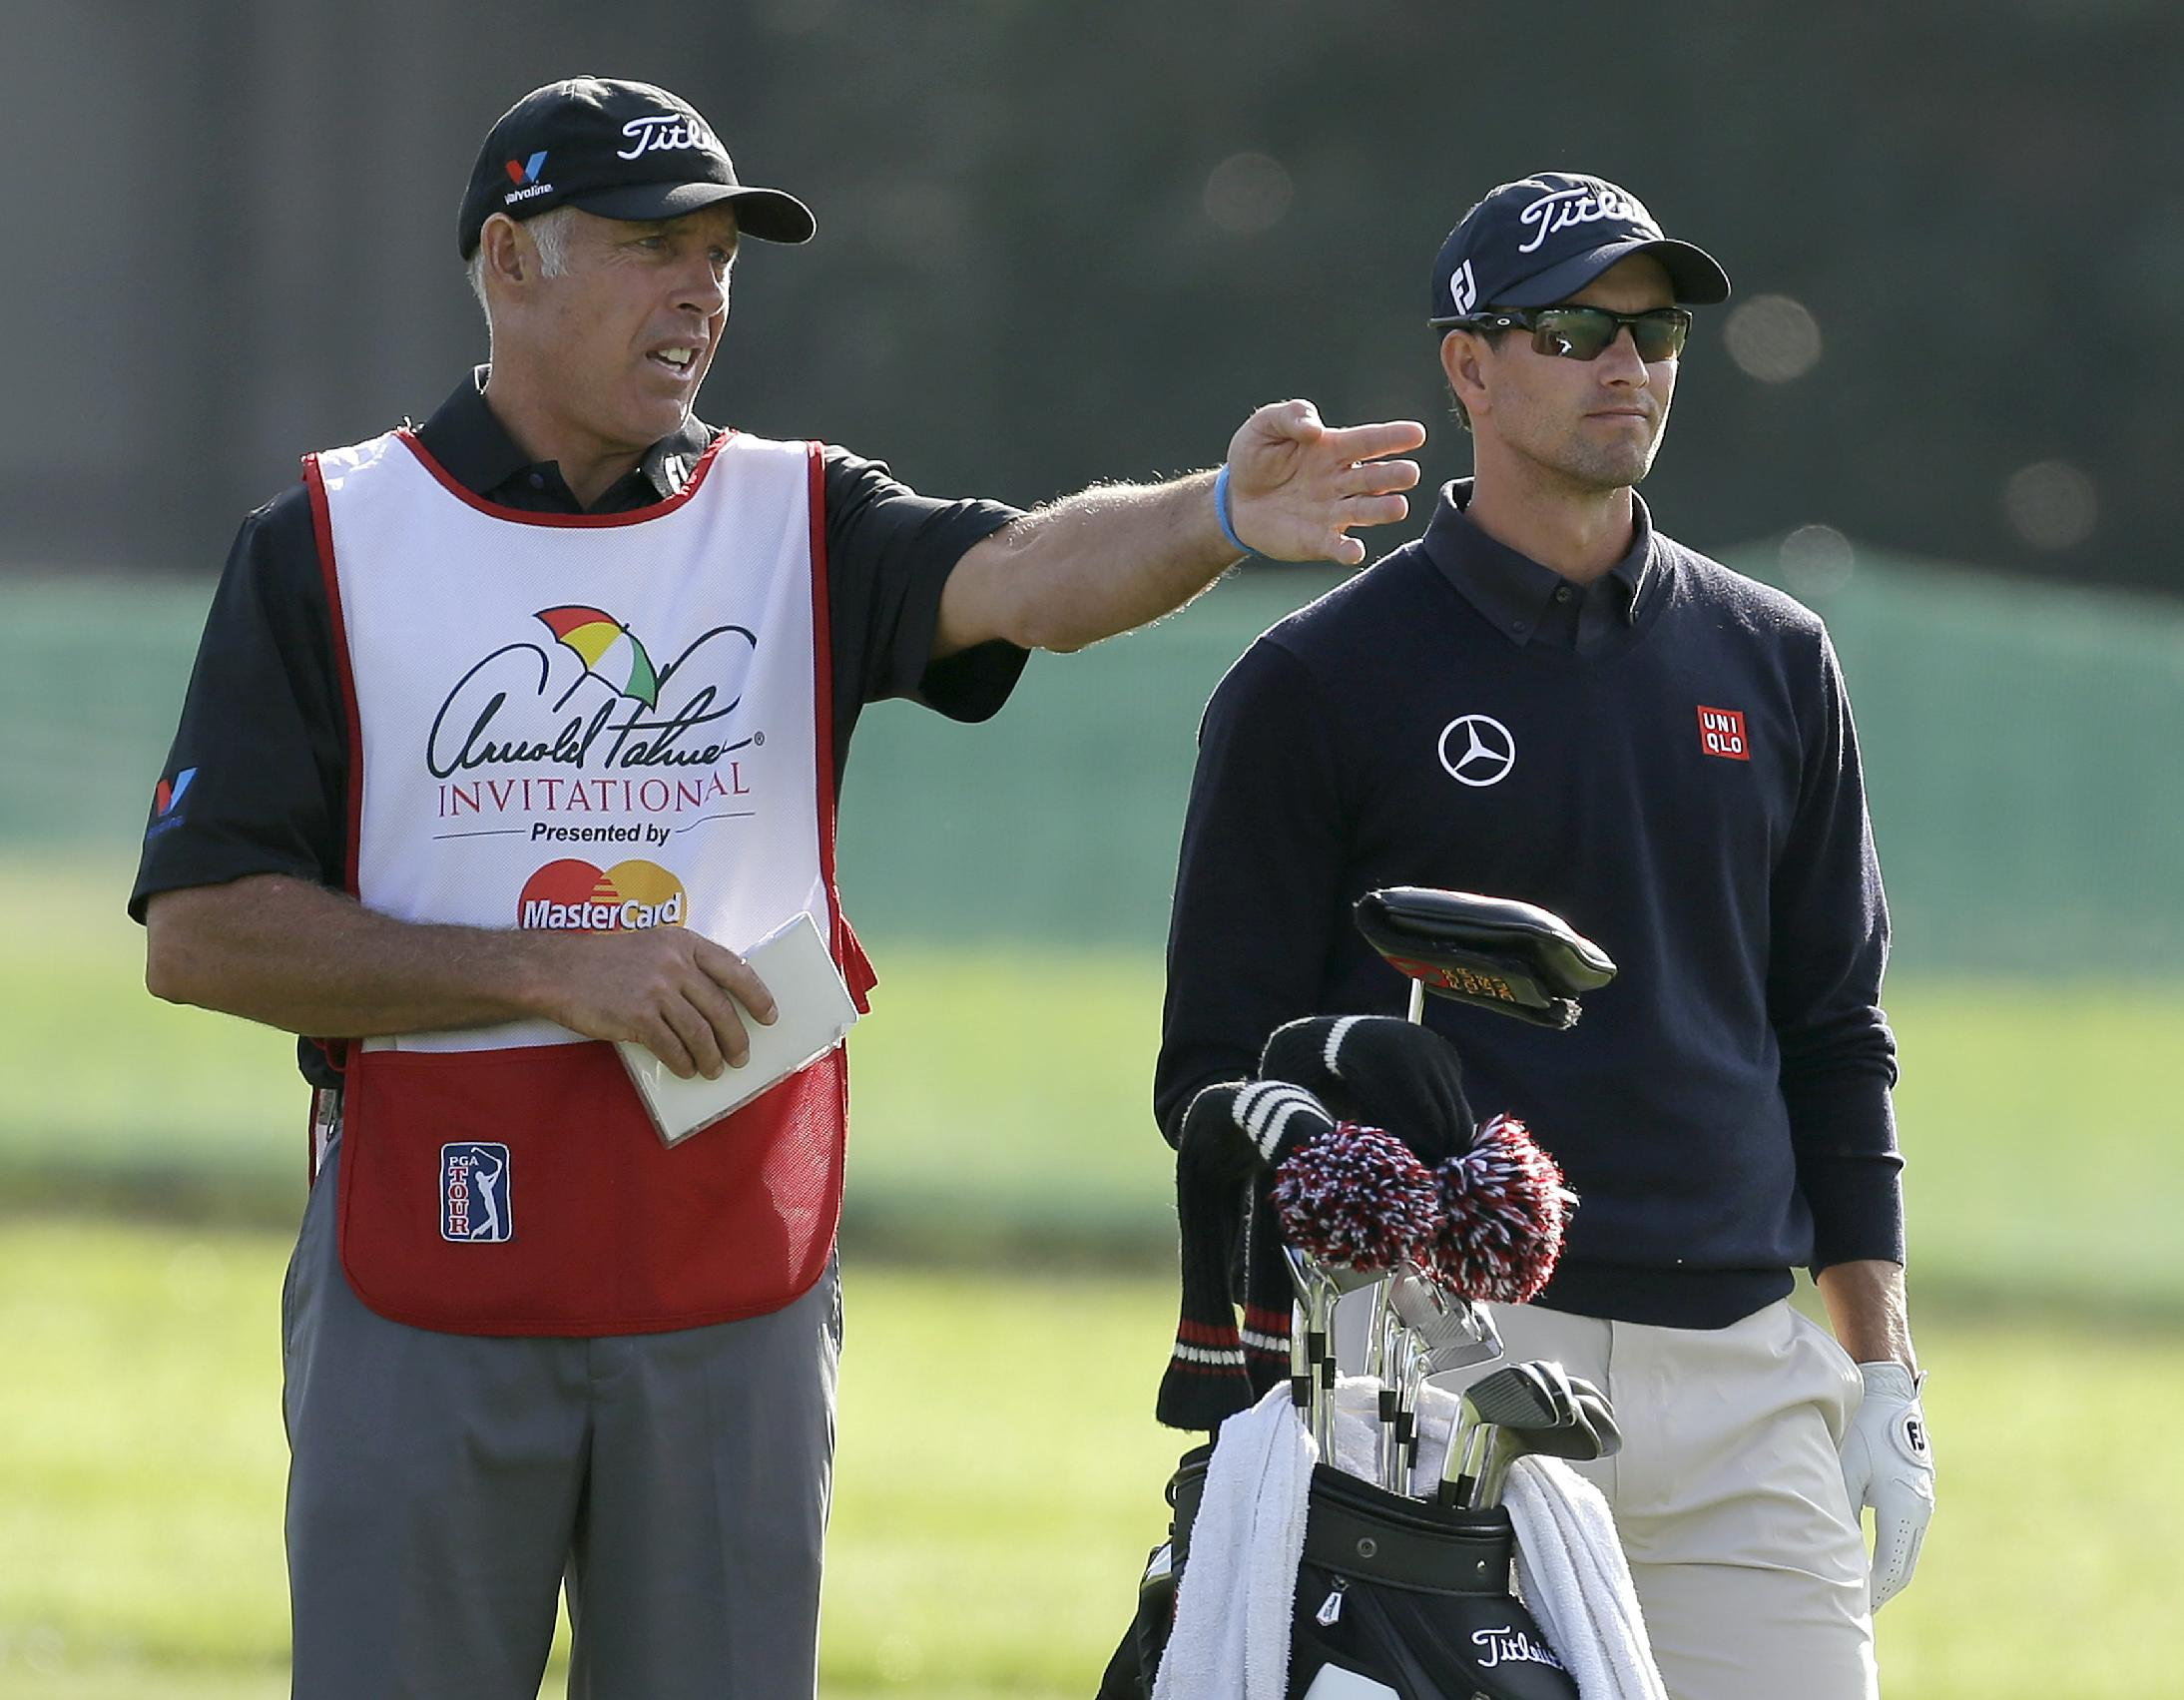 Caddie Steve Williams, left, gestures as he talks to Adam Scott, of Australia, on the 16th fairway during the first round of the Arnold Palmer Invitational golf tournament at Bay Hill Thursday, March 20, 2014, in Orlando, Fla